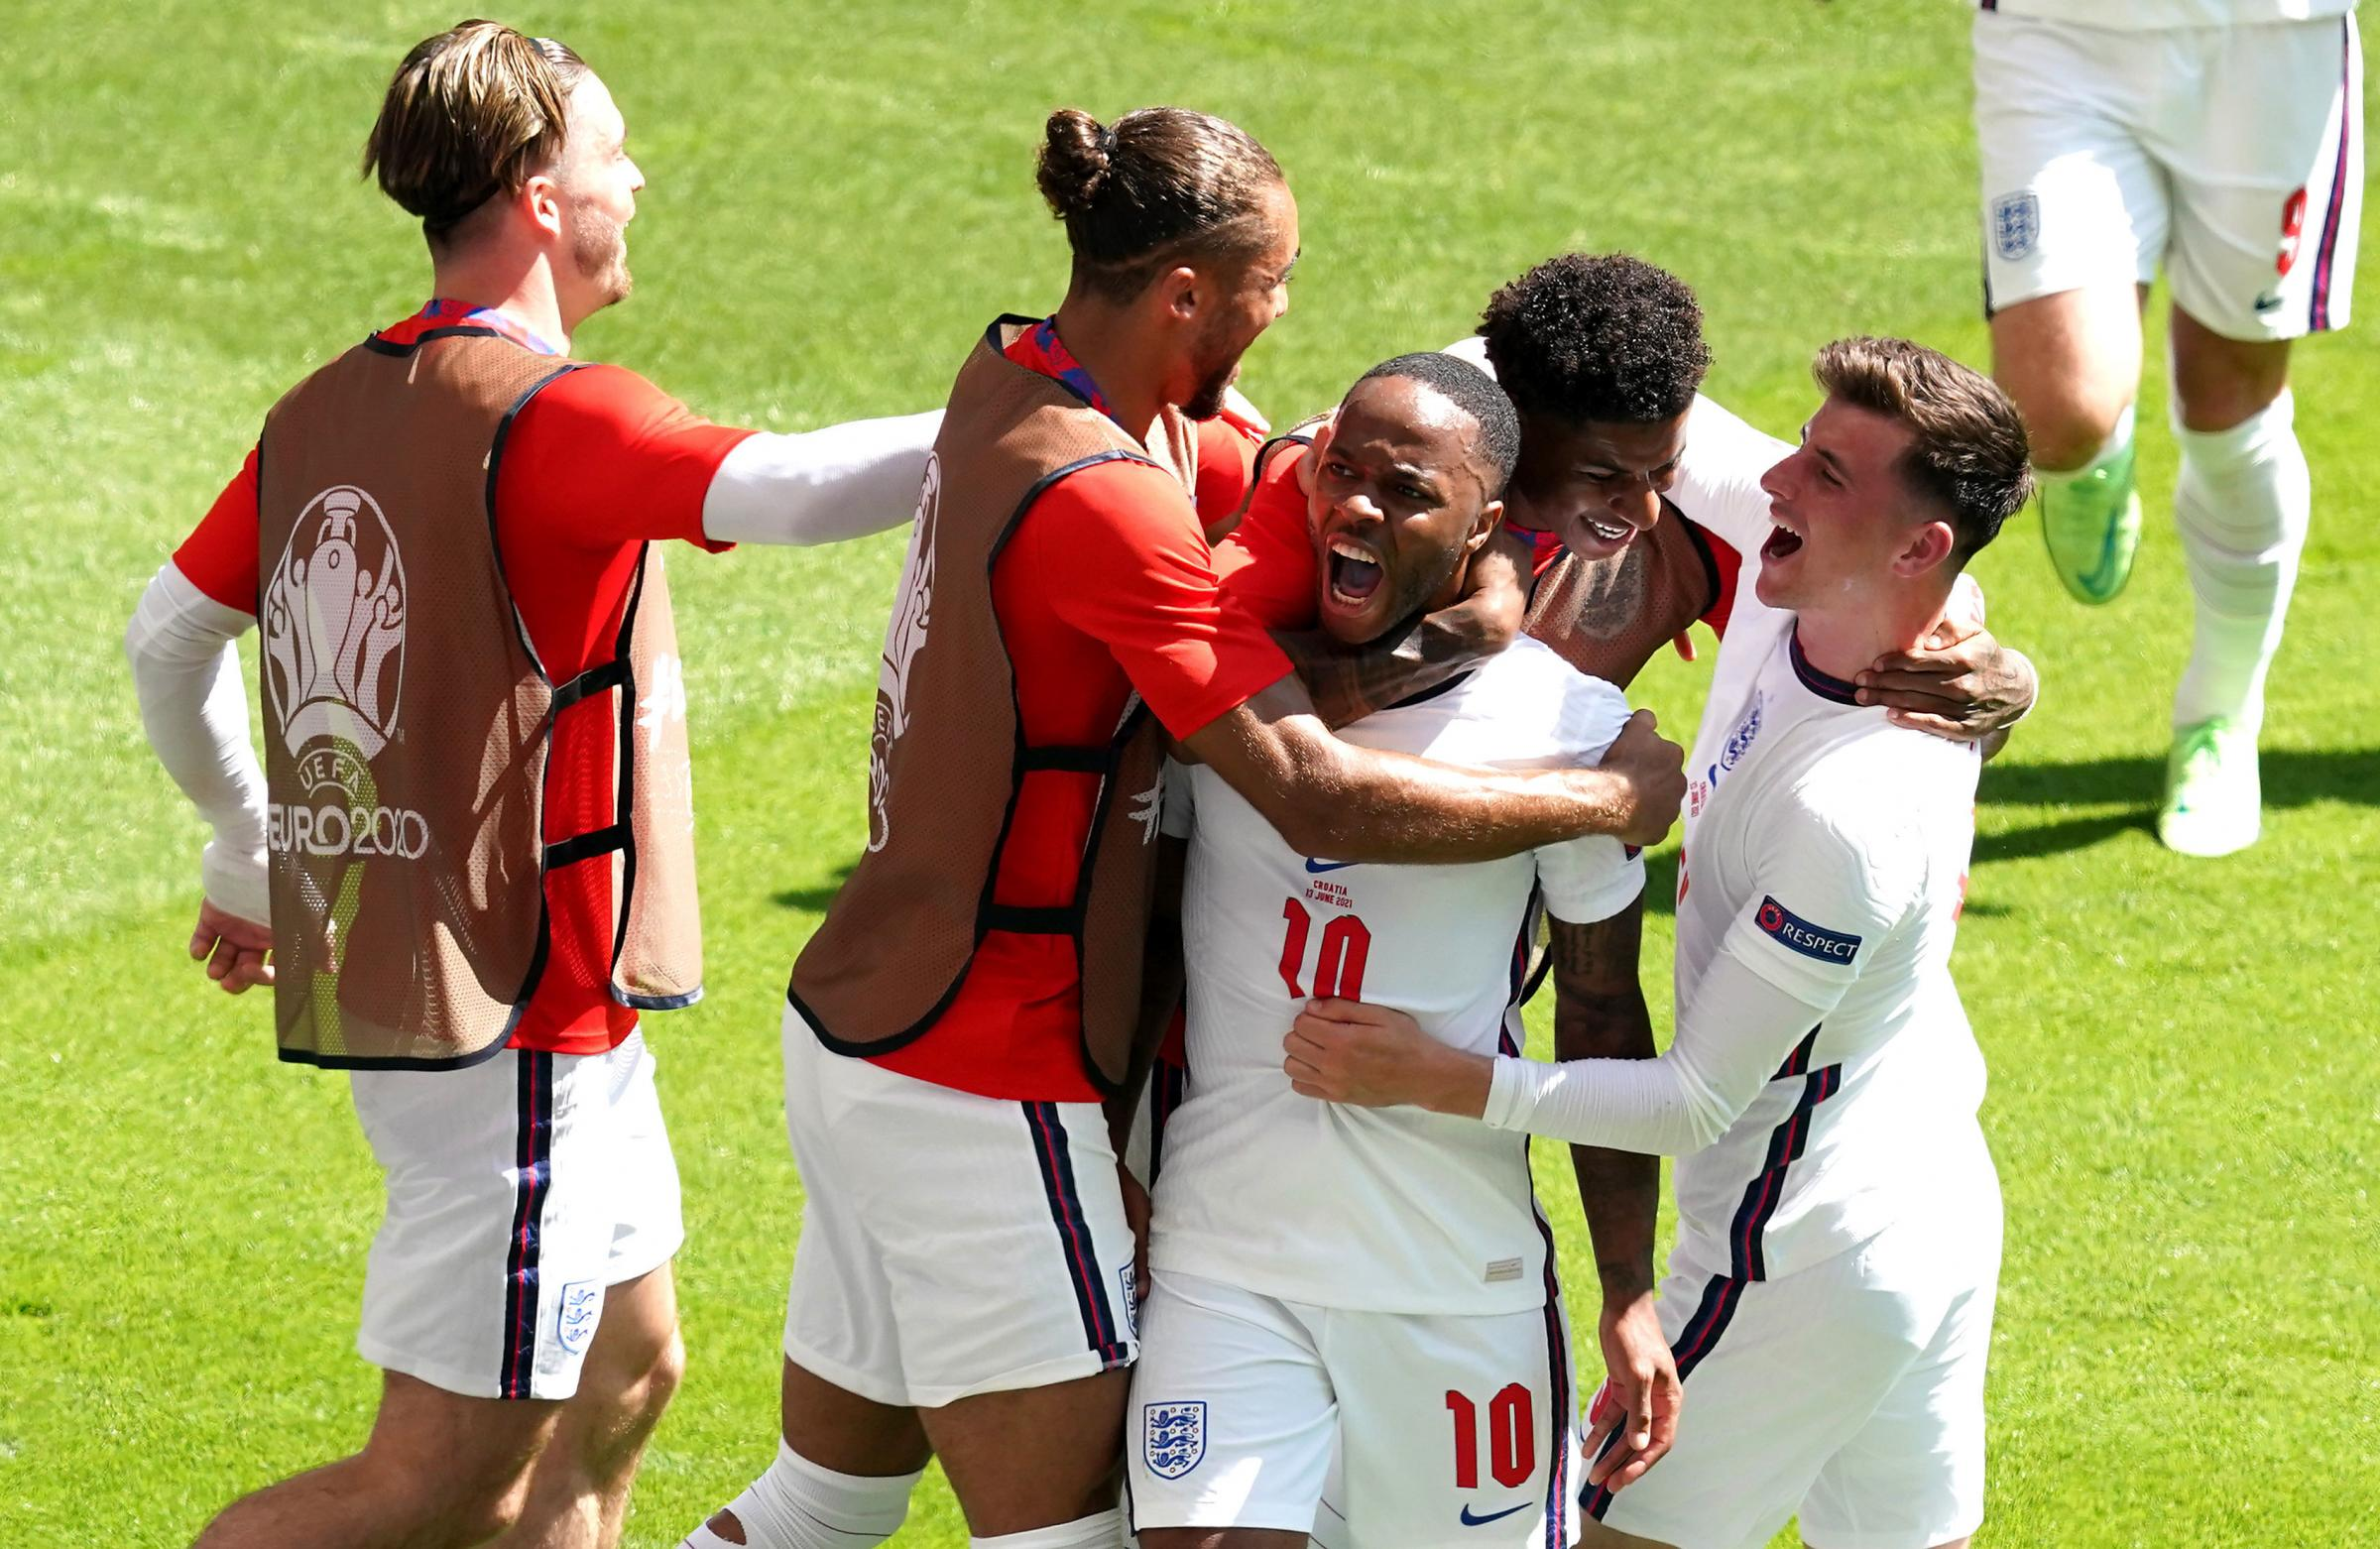 England 1-0 Croatia: Football's coming back as Gareth Southgate's side start Group D with Wembley win